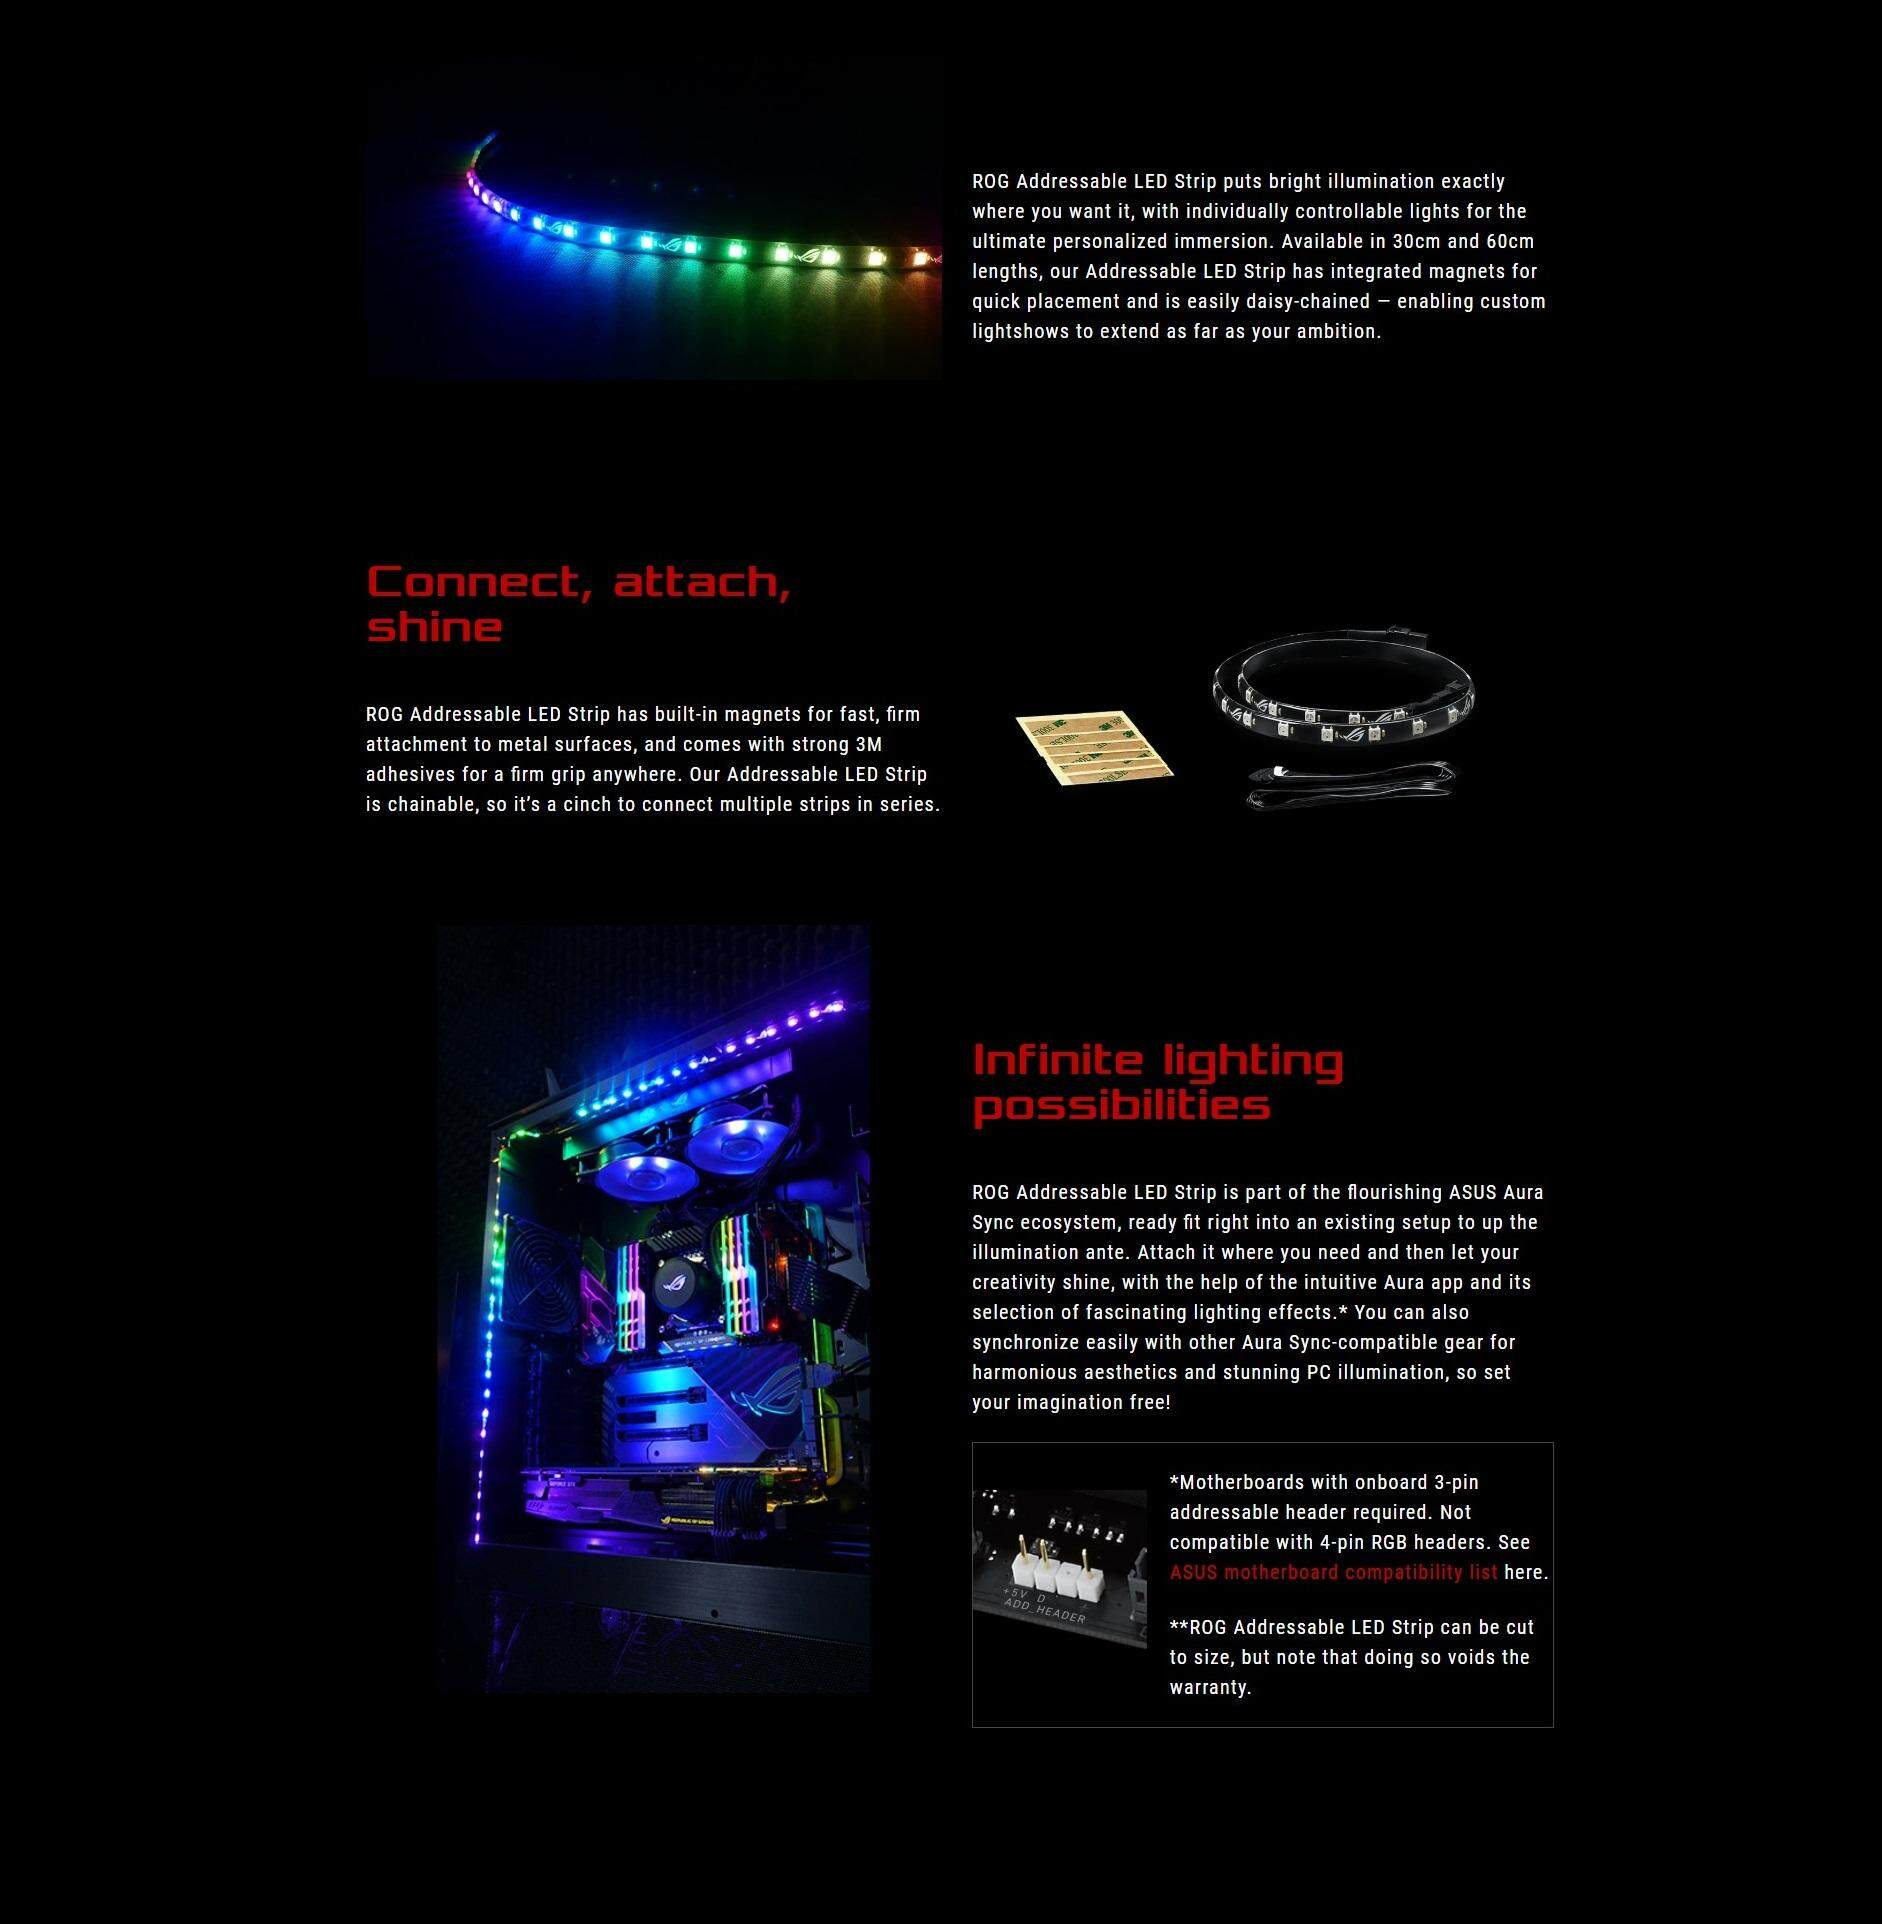 ASUS ROG Addressable RGB LED Strip 60CM